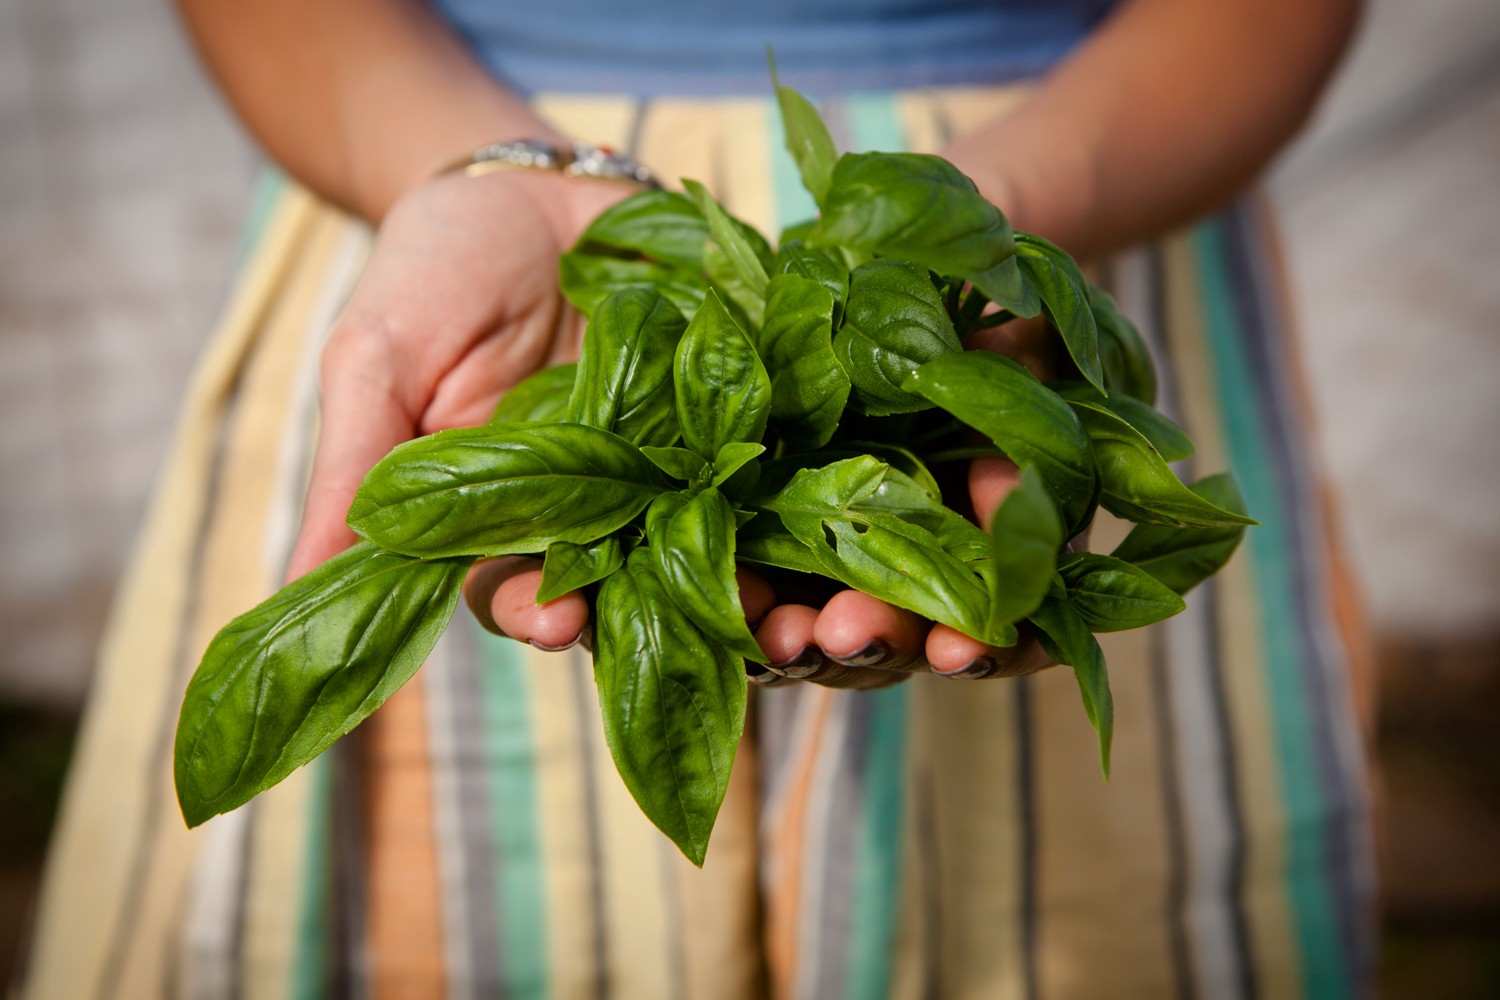 A farmer holds basil leaves